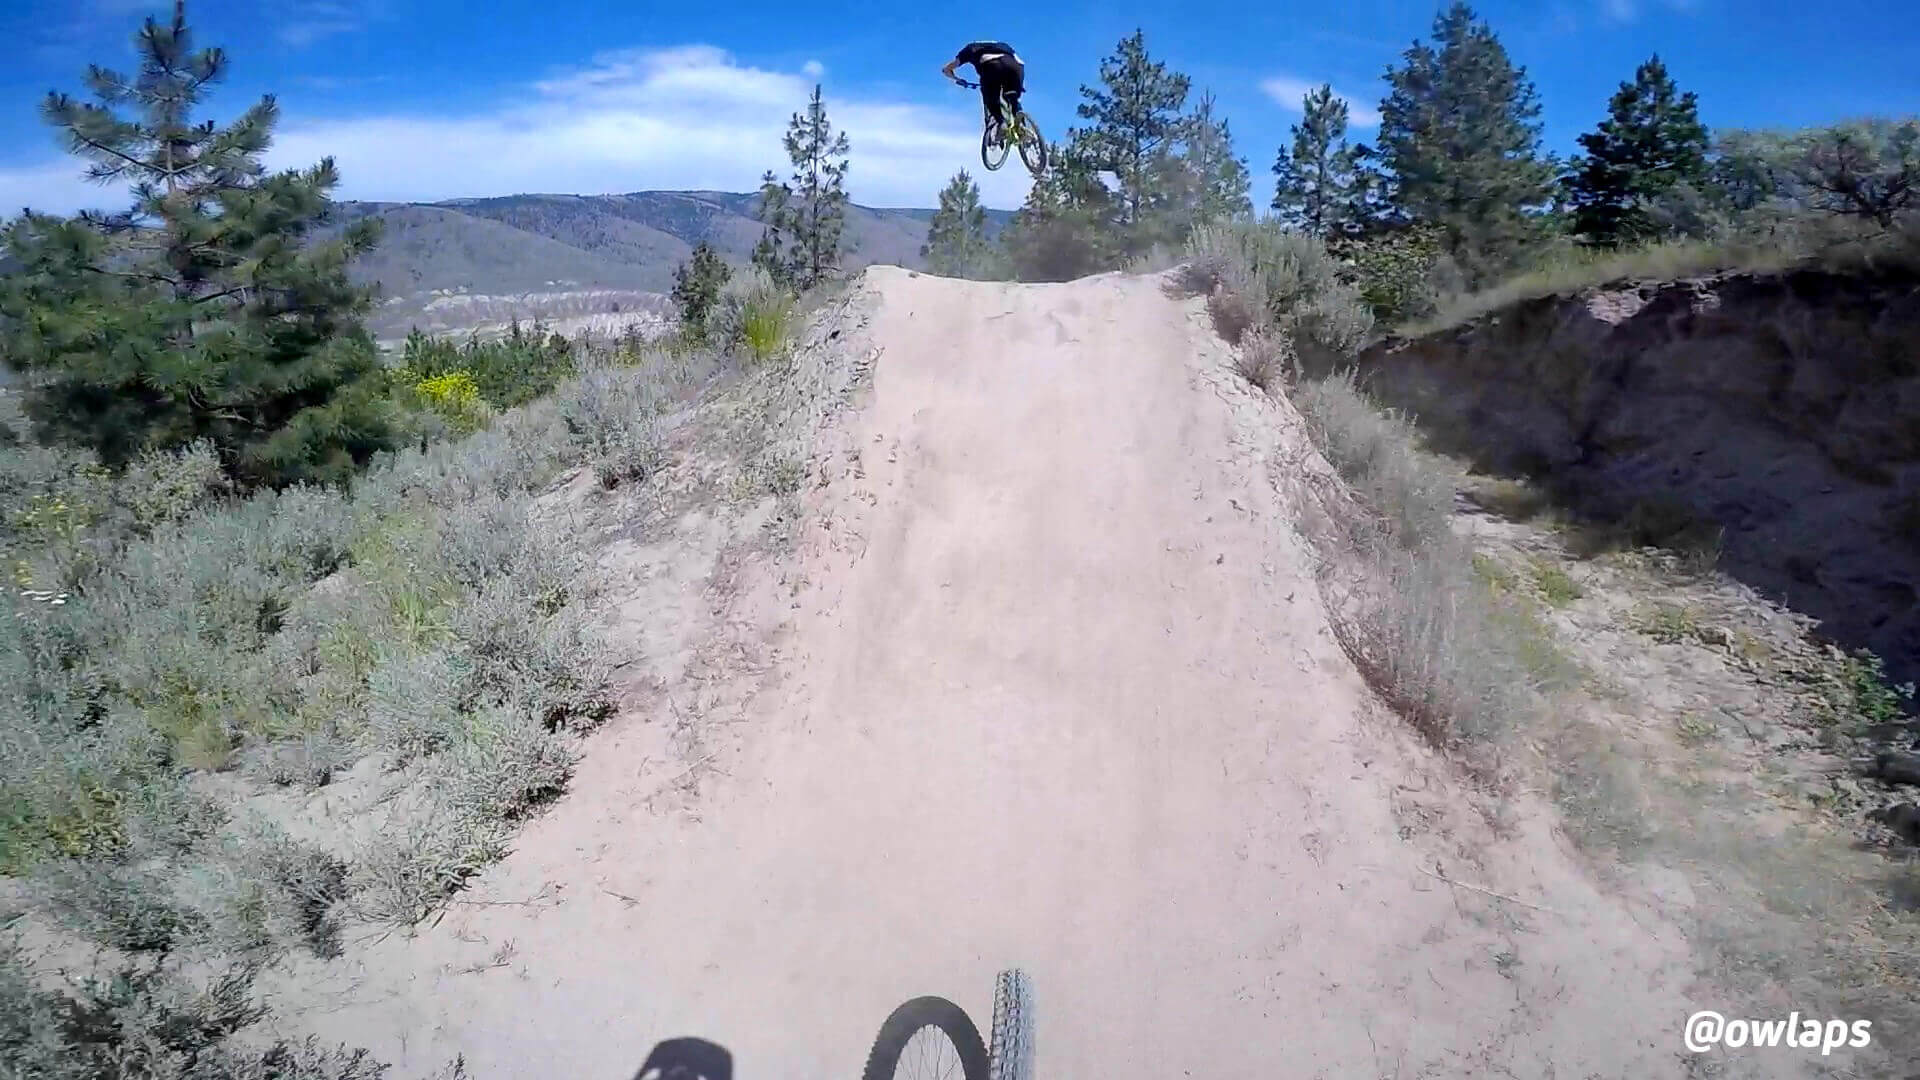 wrangler-kamloops-bike-ranch-canada-owlaps-HD-2